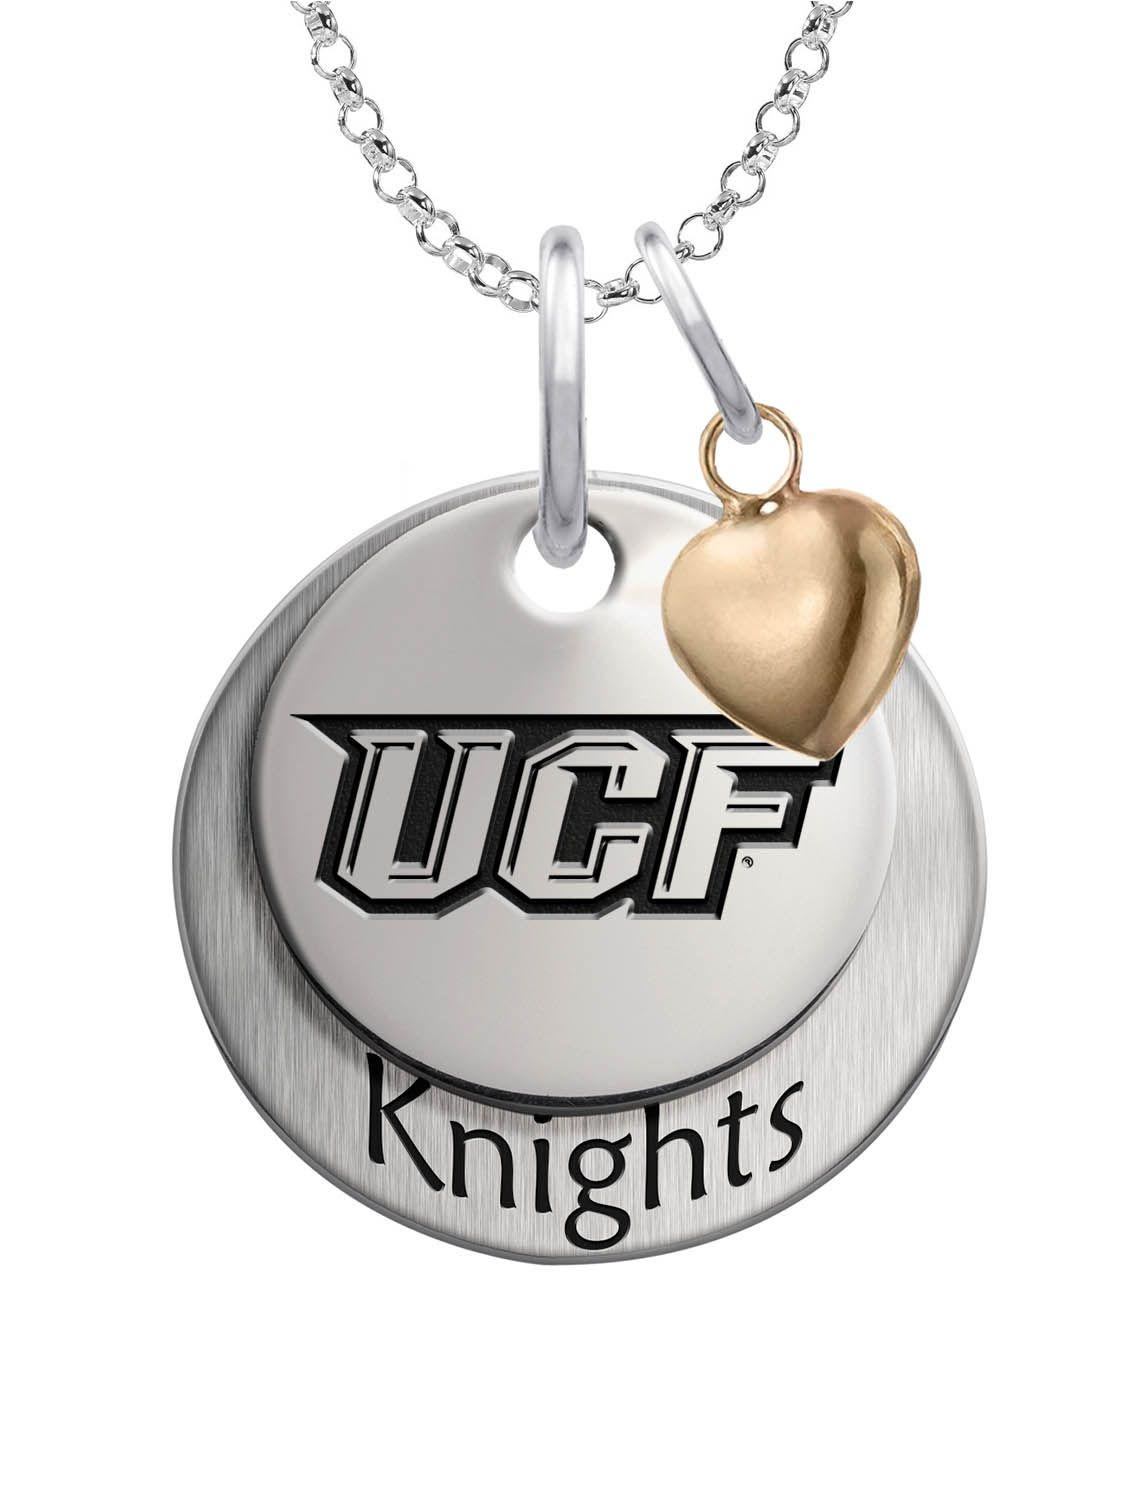 Solid sterling silver Central Florida Knights charm set with heart accent.